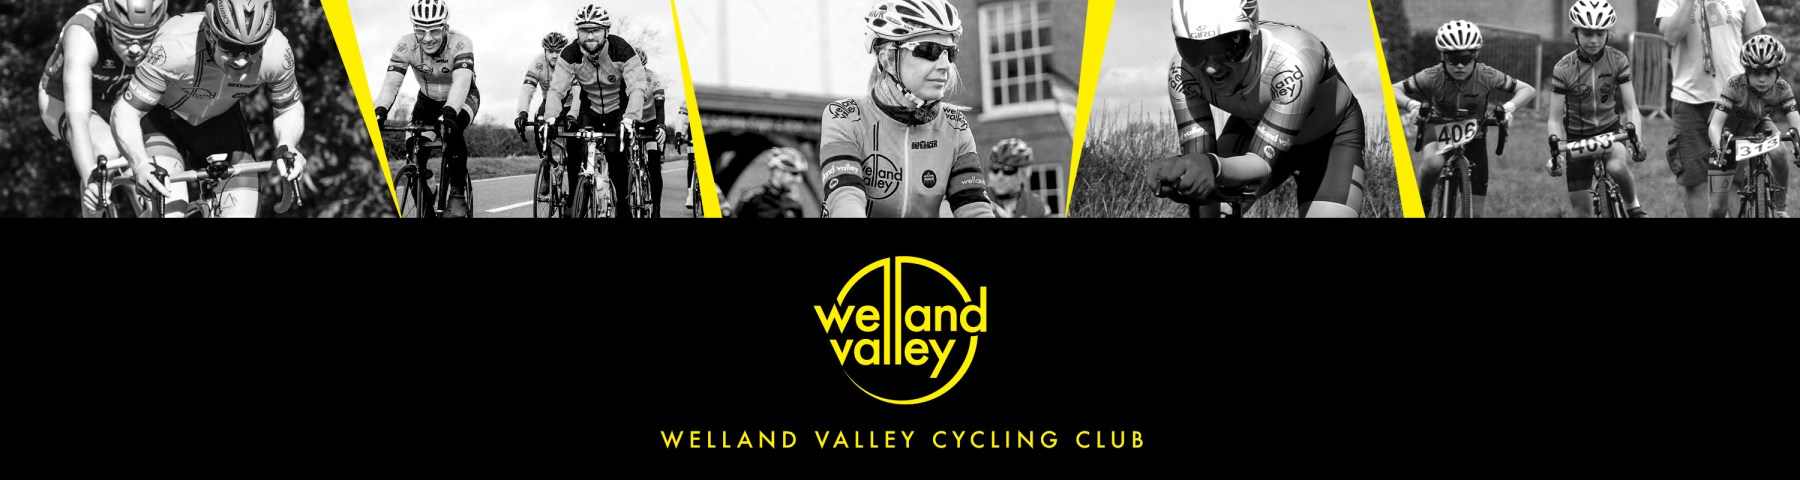 Welland Valley Cycling Club Web Header